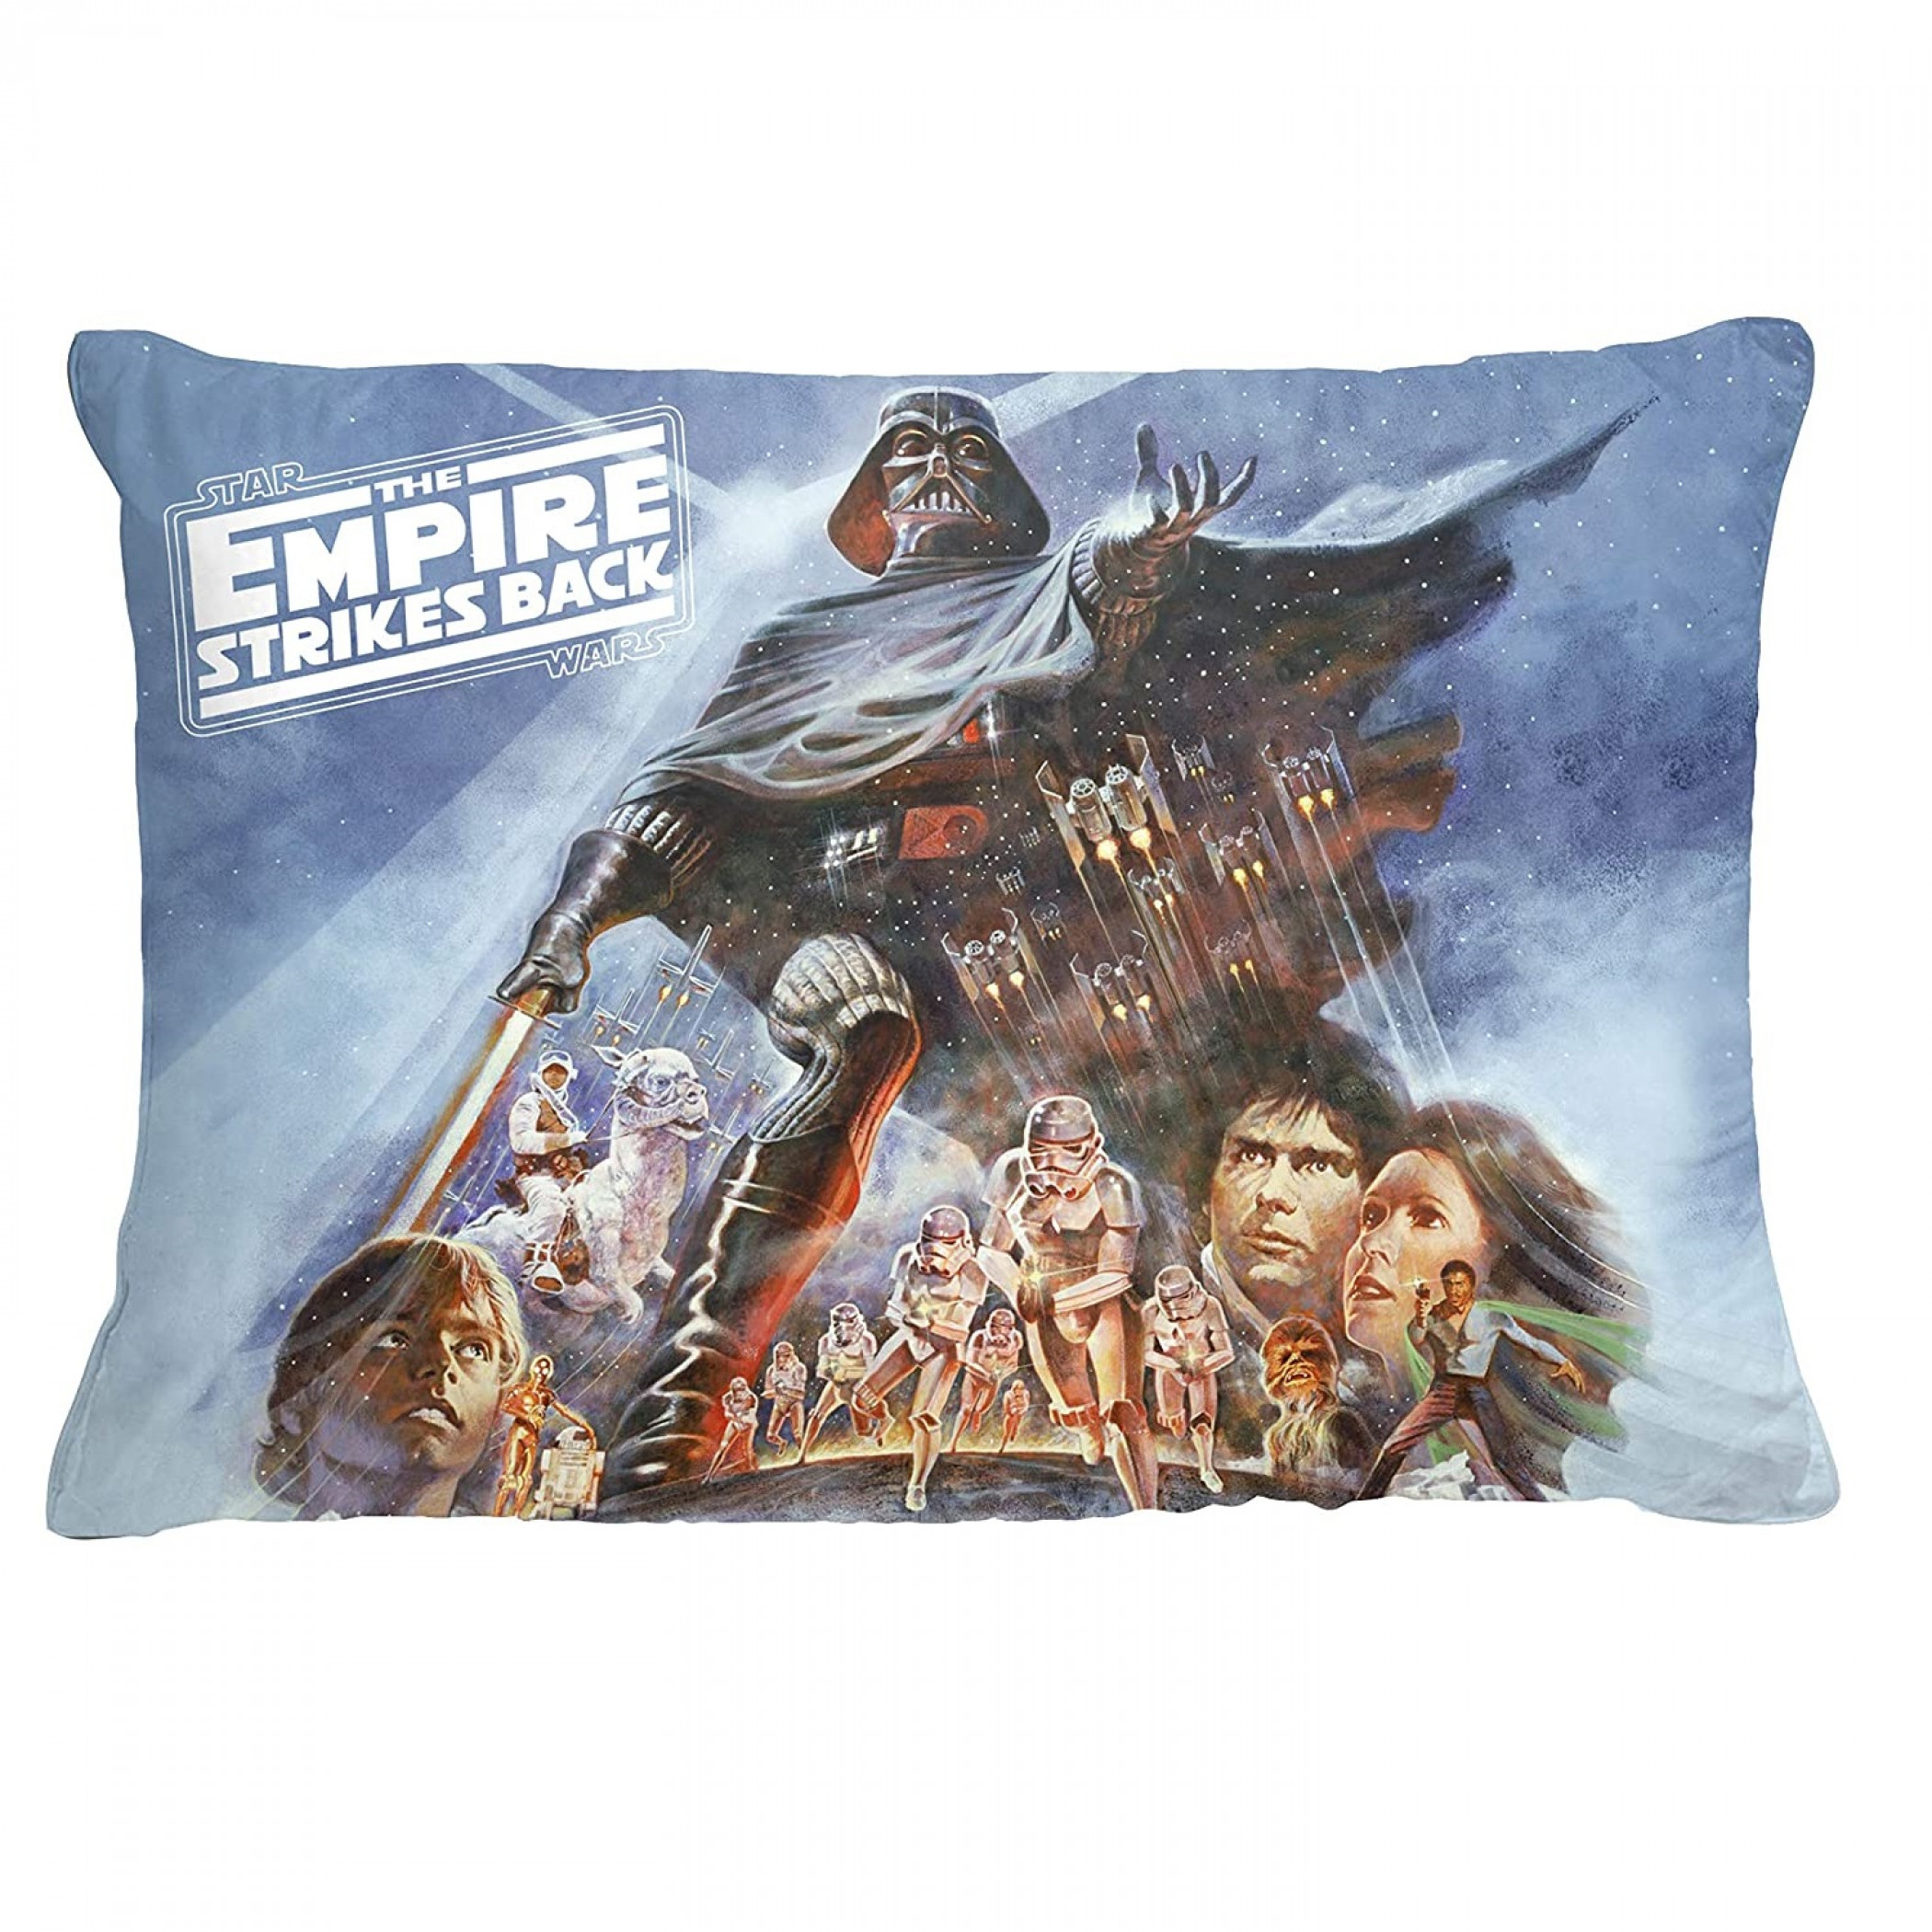 Star Wars 40th Anniversary Decorative Pillow